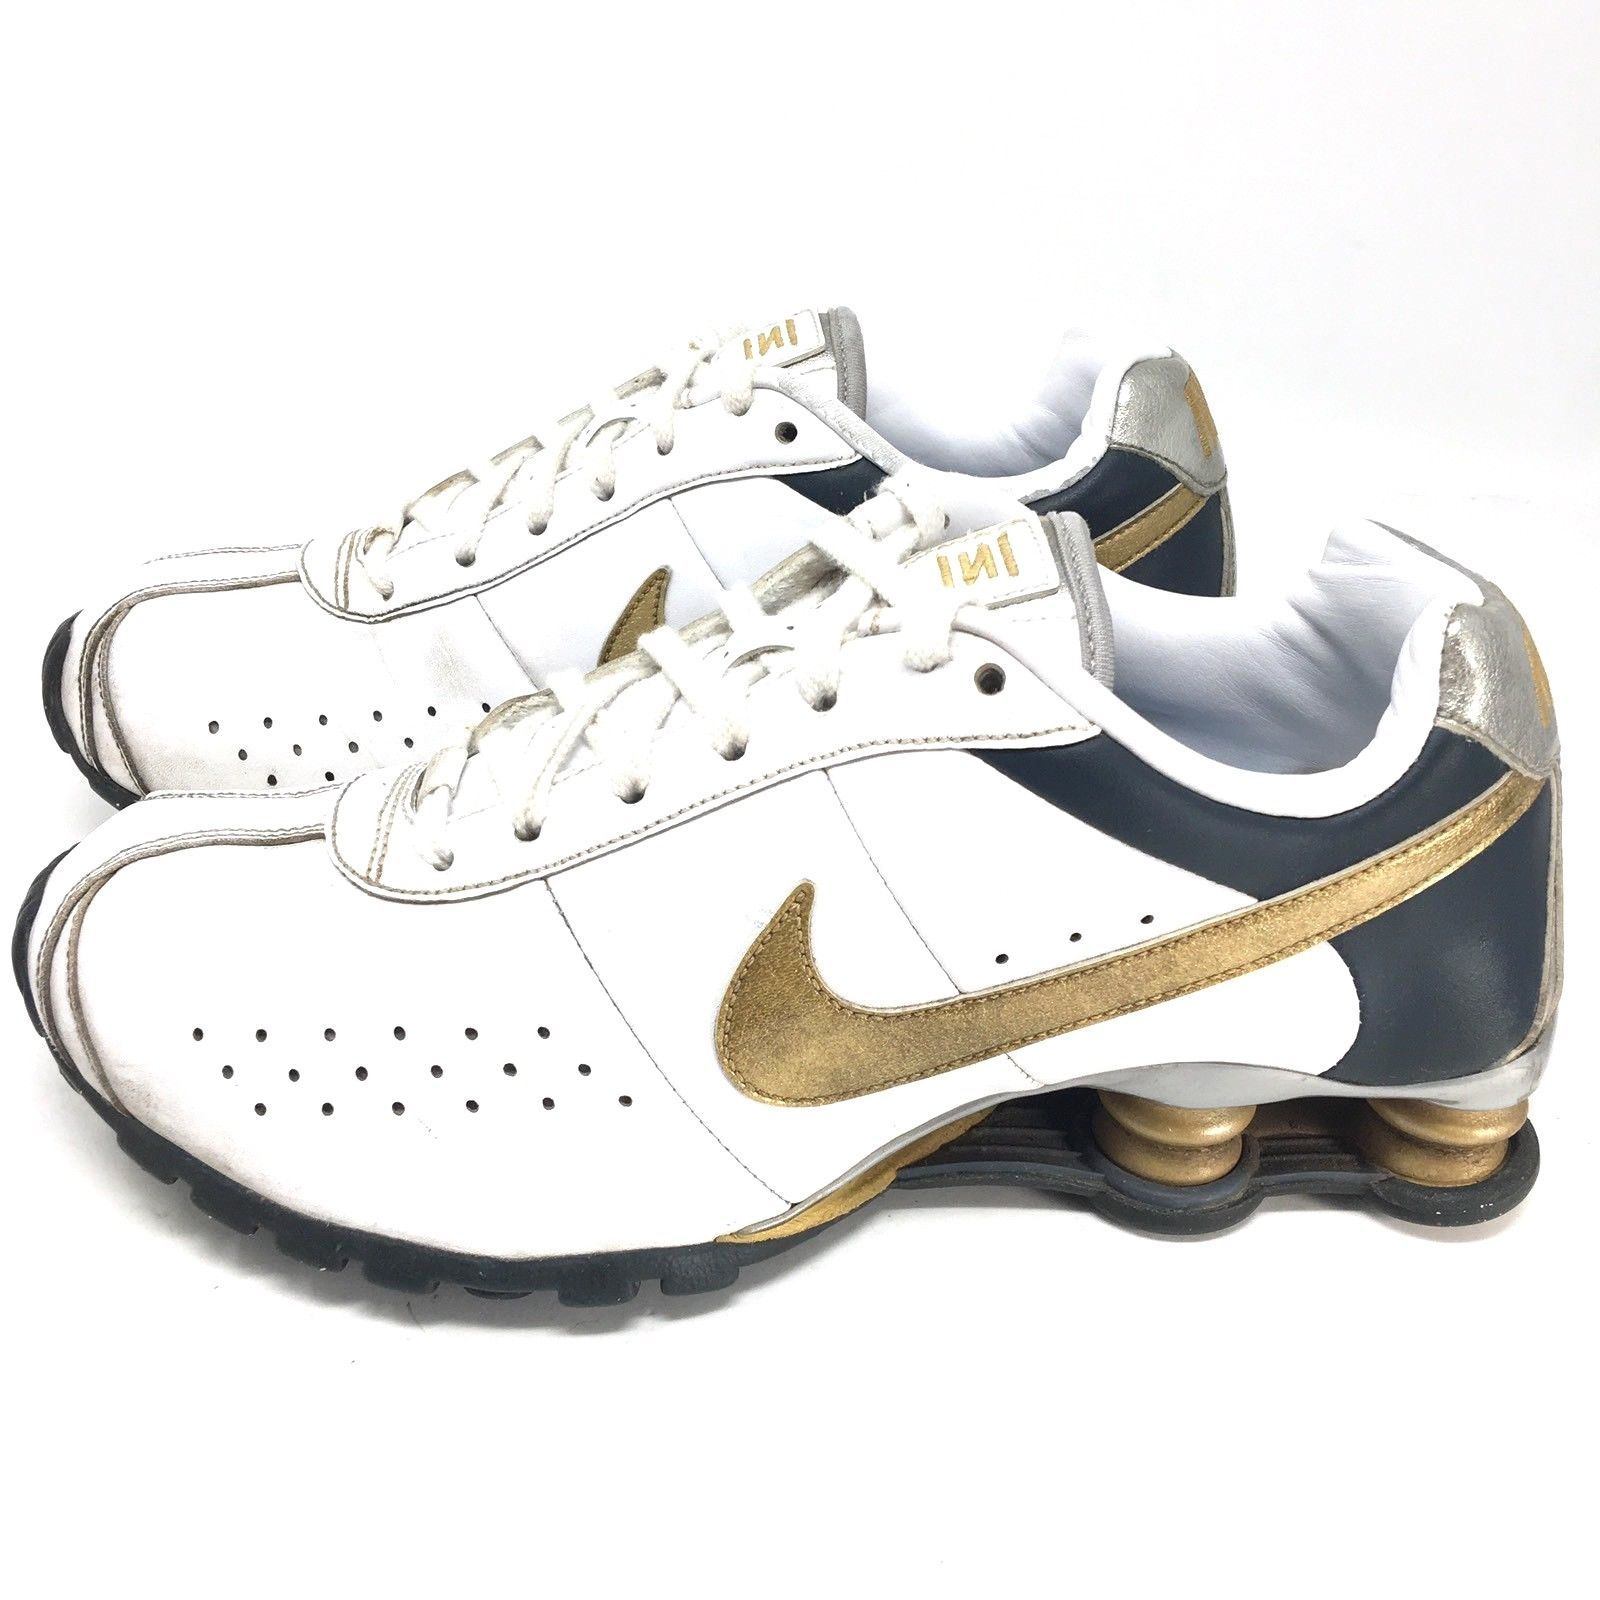 57. 57. Nike Womens Shox Classic II White Gold 343907-171 Running Shoes  Sneakers Sz 8 M  Nike Womens Shox ... 388564f25